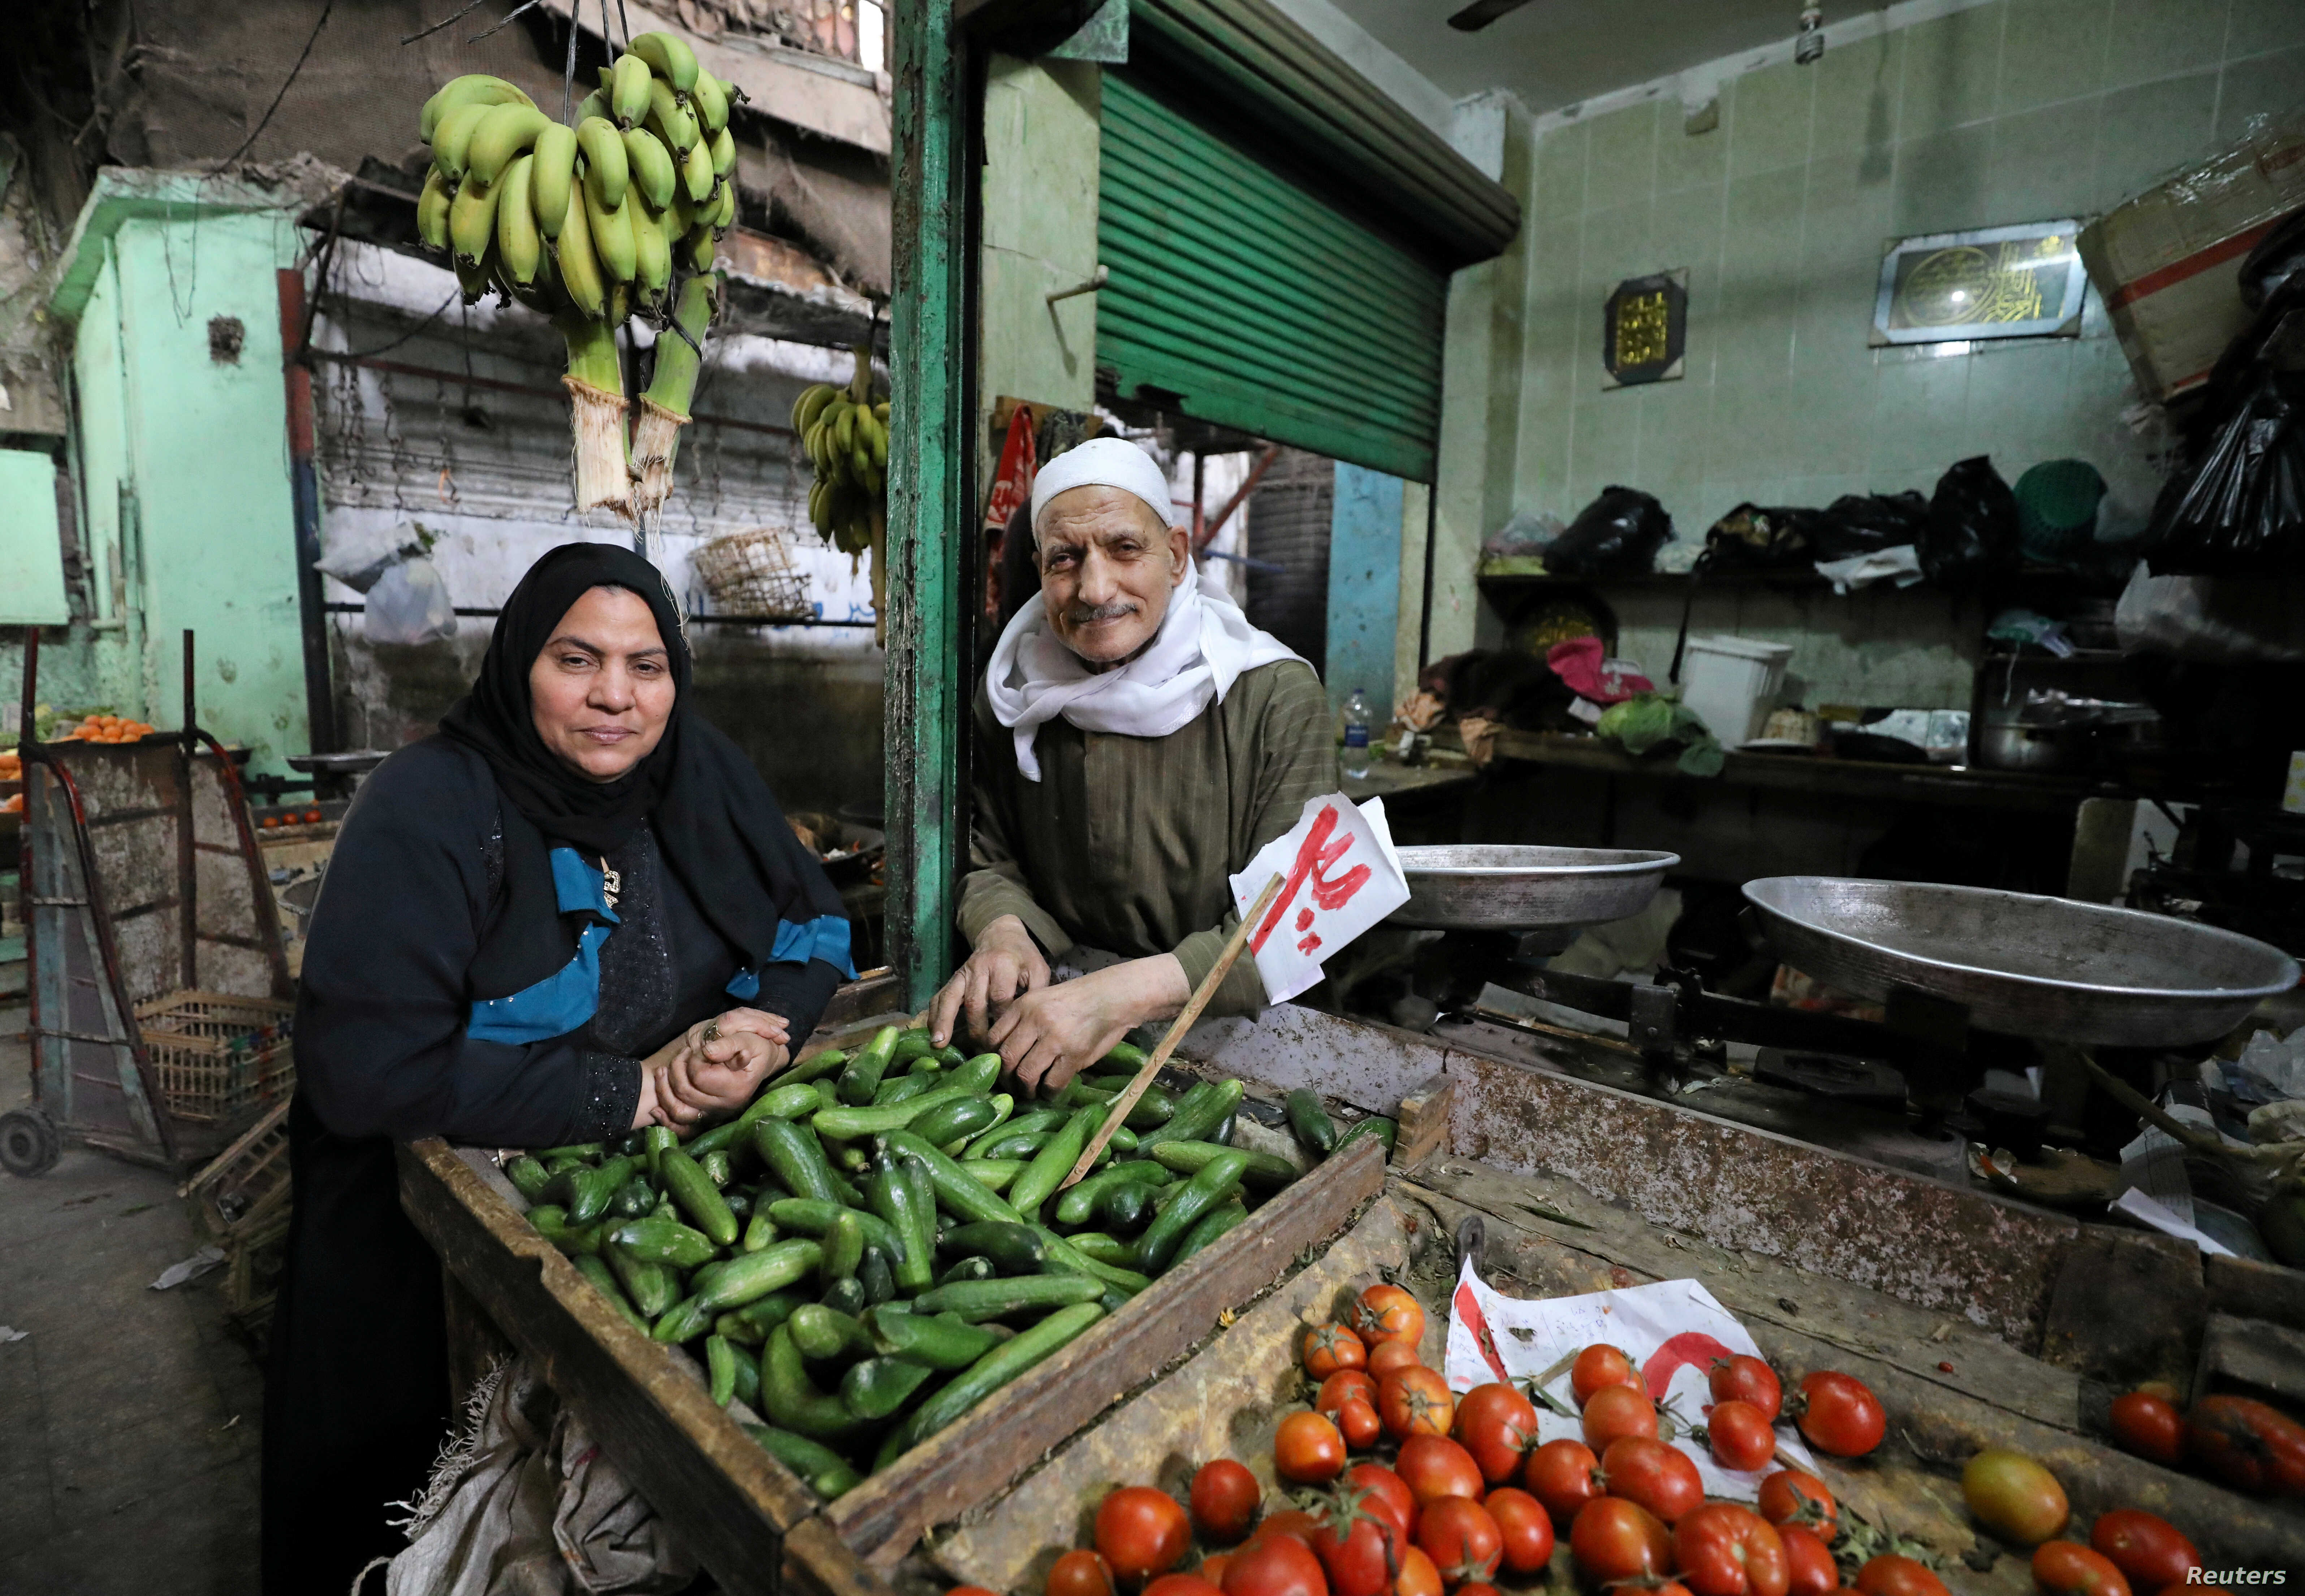 Hayes Mehana (R), 78, and Om Hany, 60, pose for a photograph at a vegetable market in Cairo, Egypt, February 12, 2018.